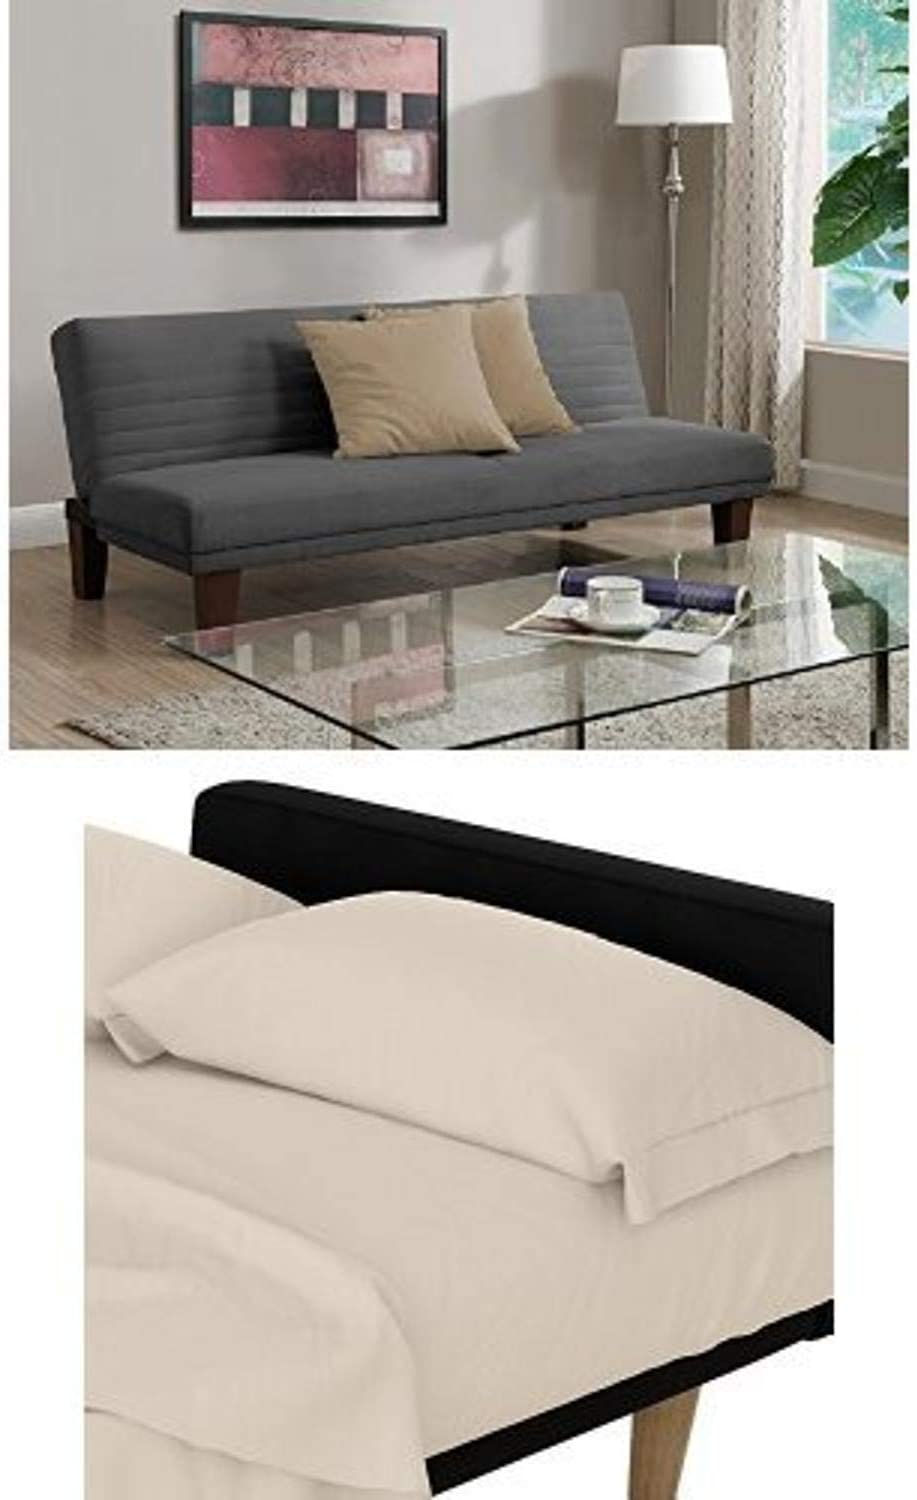 DHP Dillan Convertible Futon Couch Bed, Gray and Futon Sheet Set, Beige